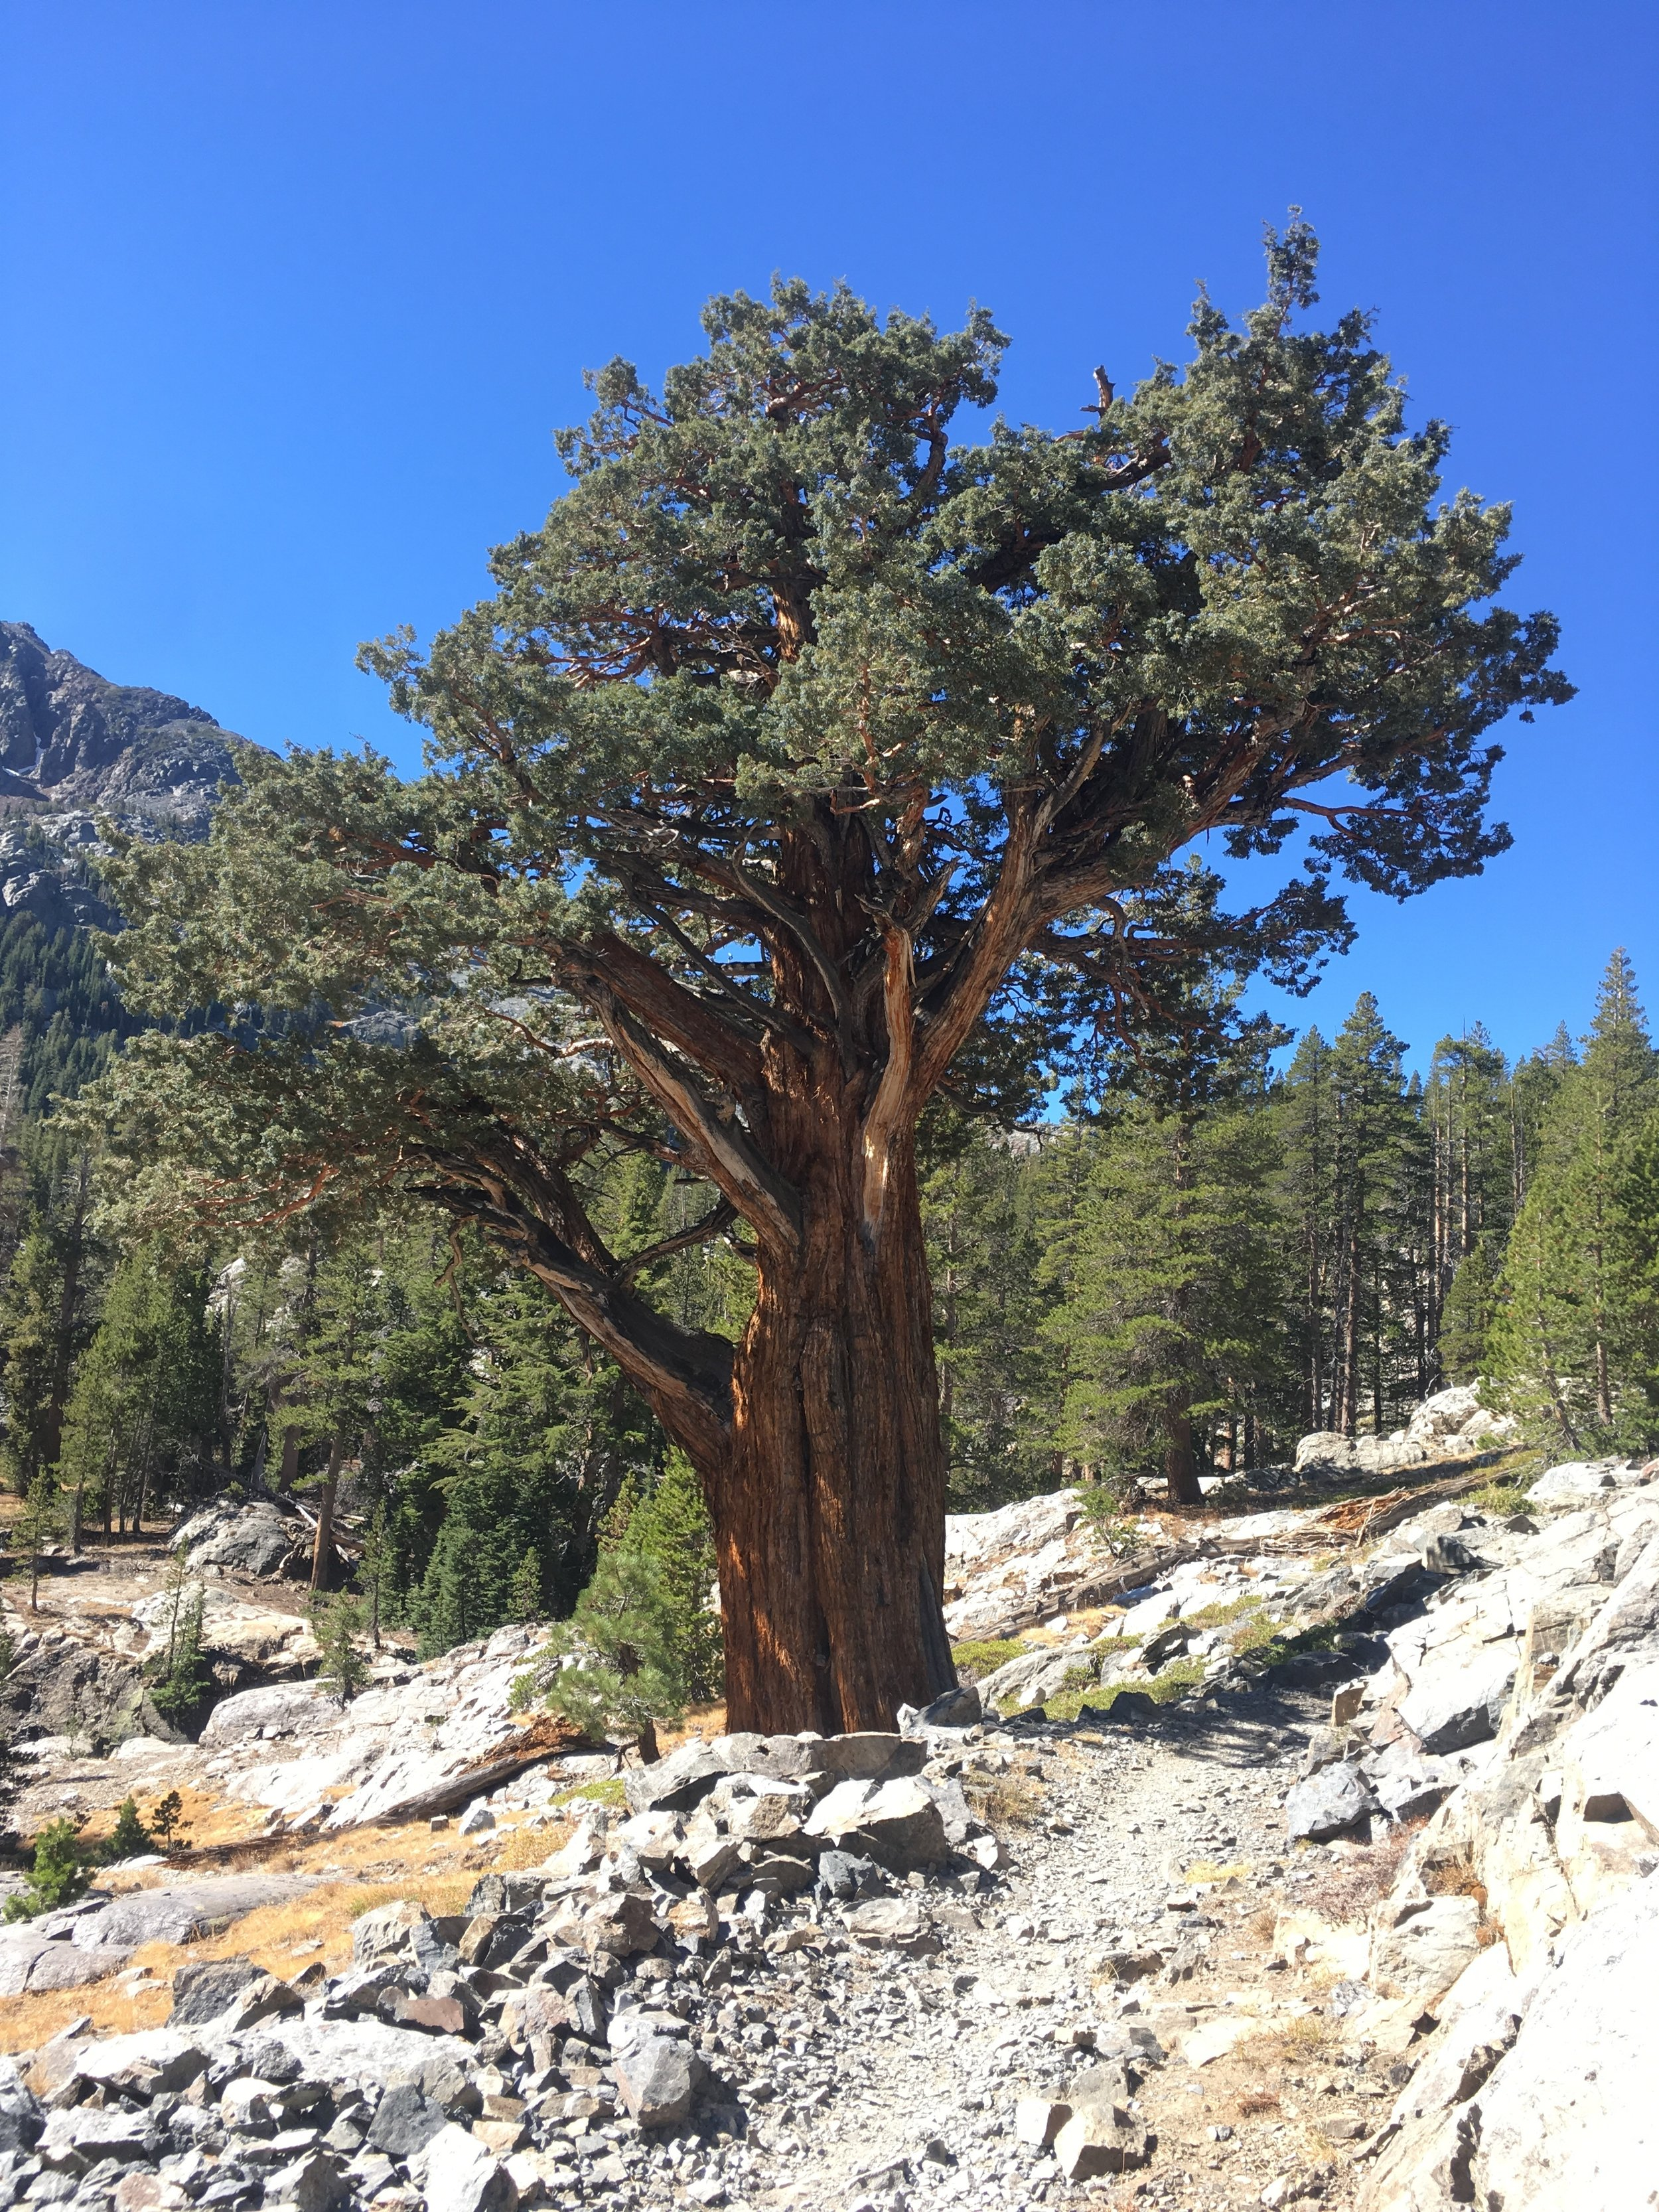 There are lots of amazing trees in the Sierra, Western Juniper is one of my faves.